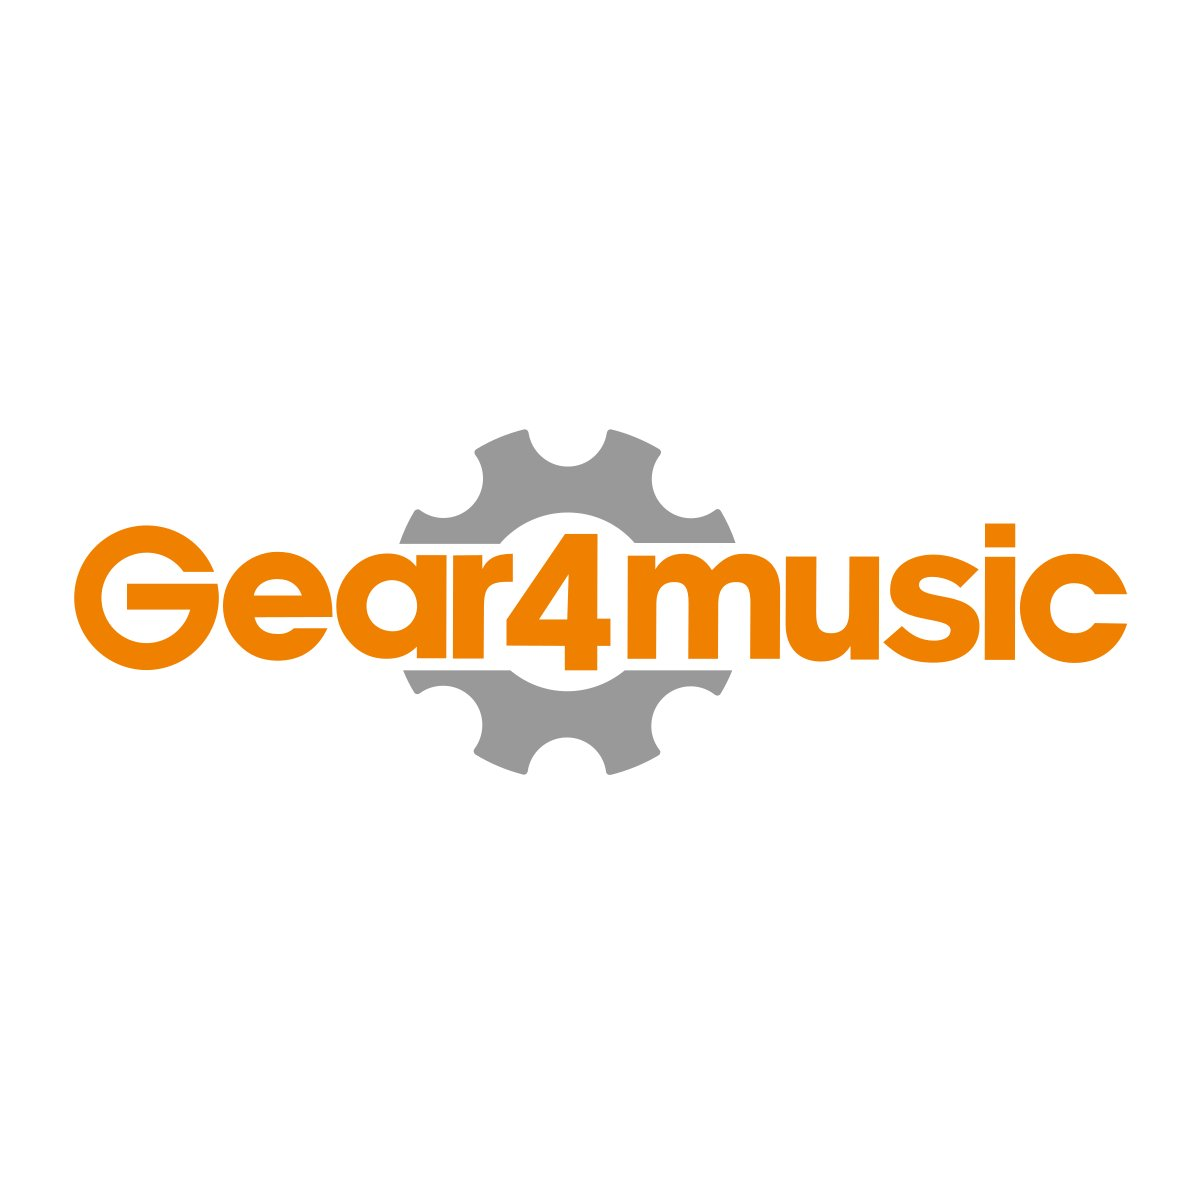 Notestativlampe fra Gear4music, 9 LED